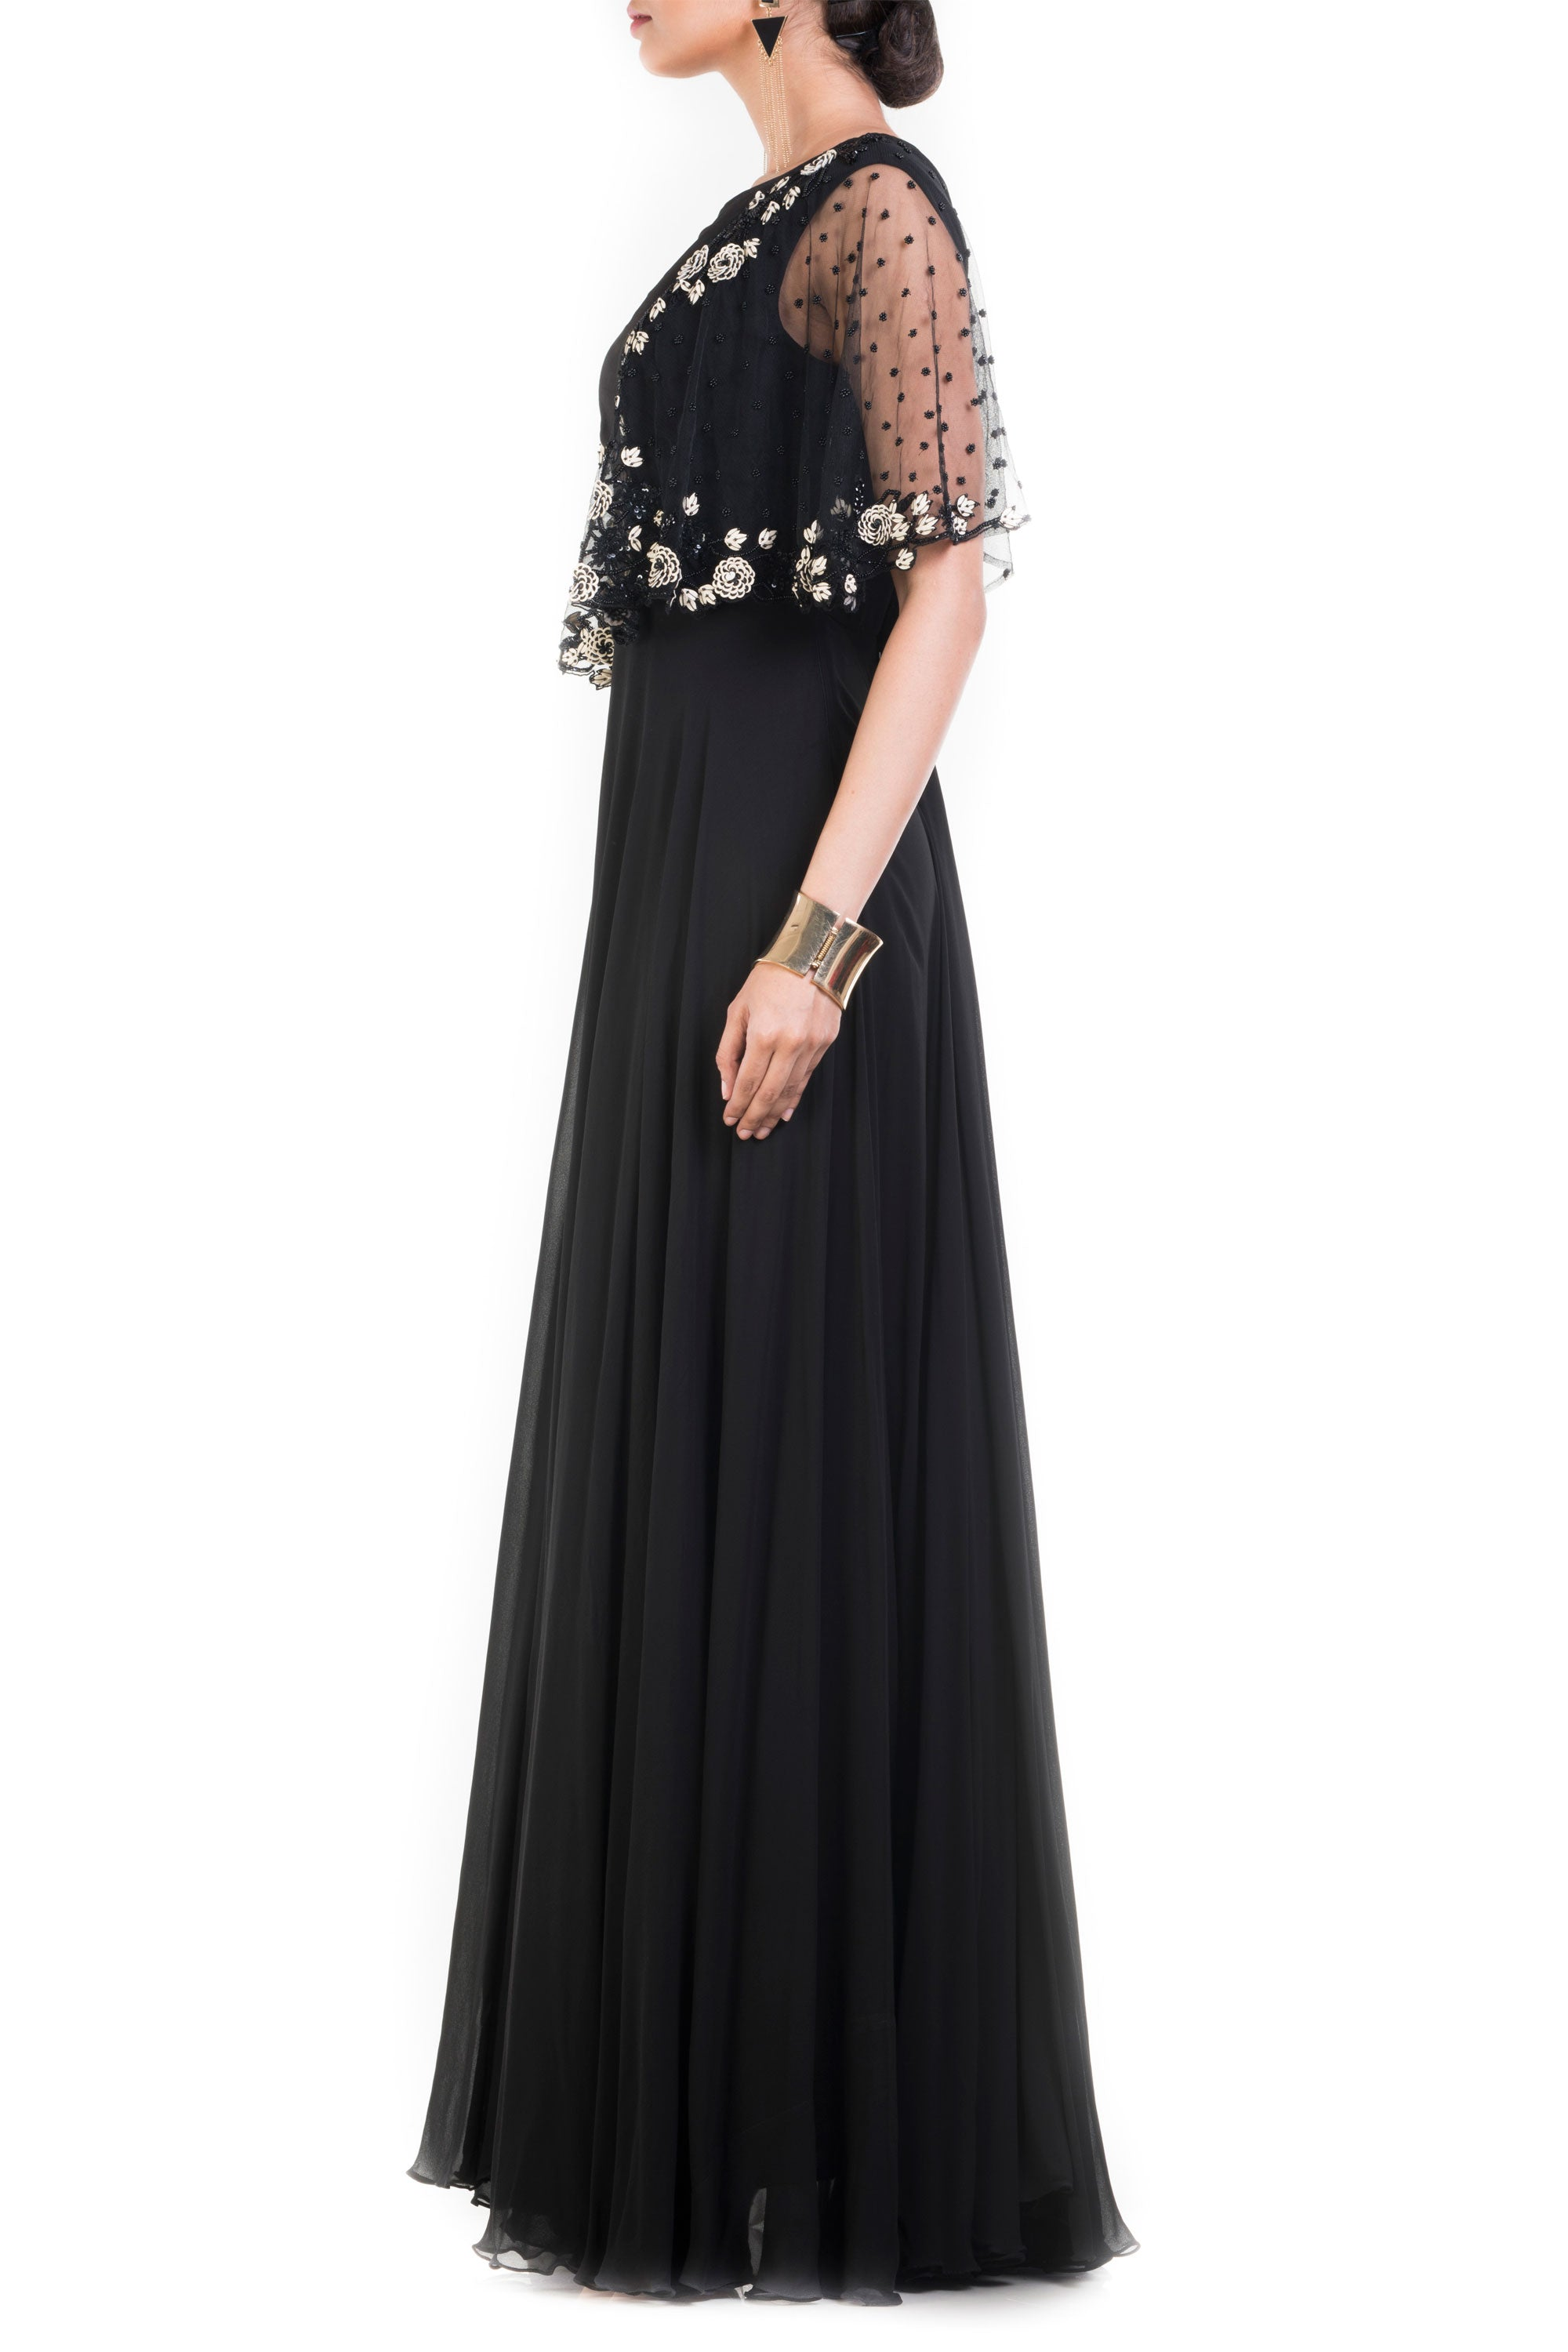 Jet Black Long Dress With Embroidered Half Cape Side